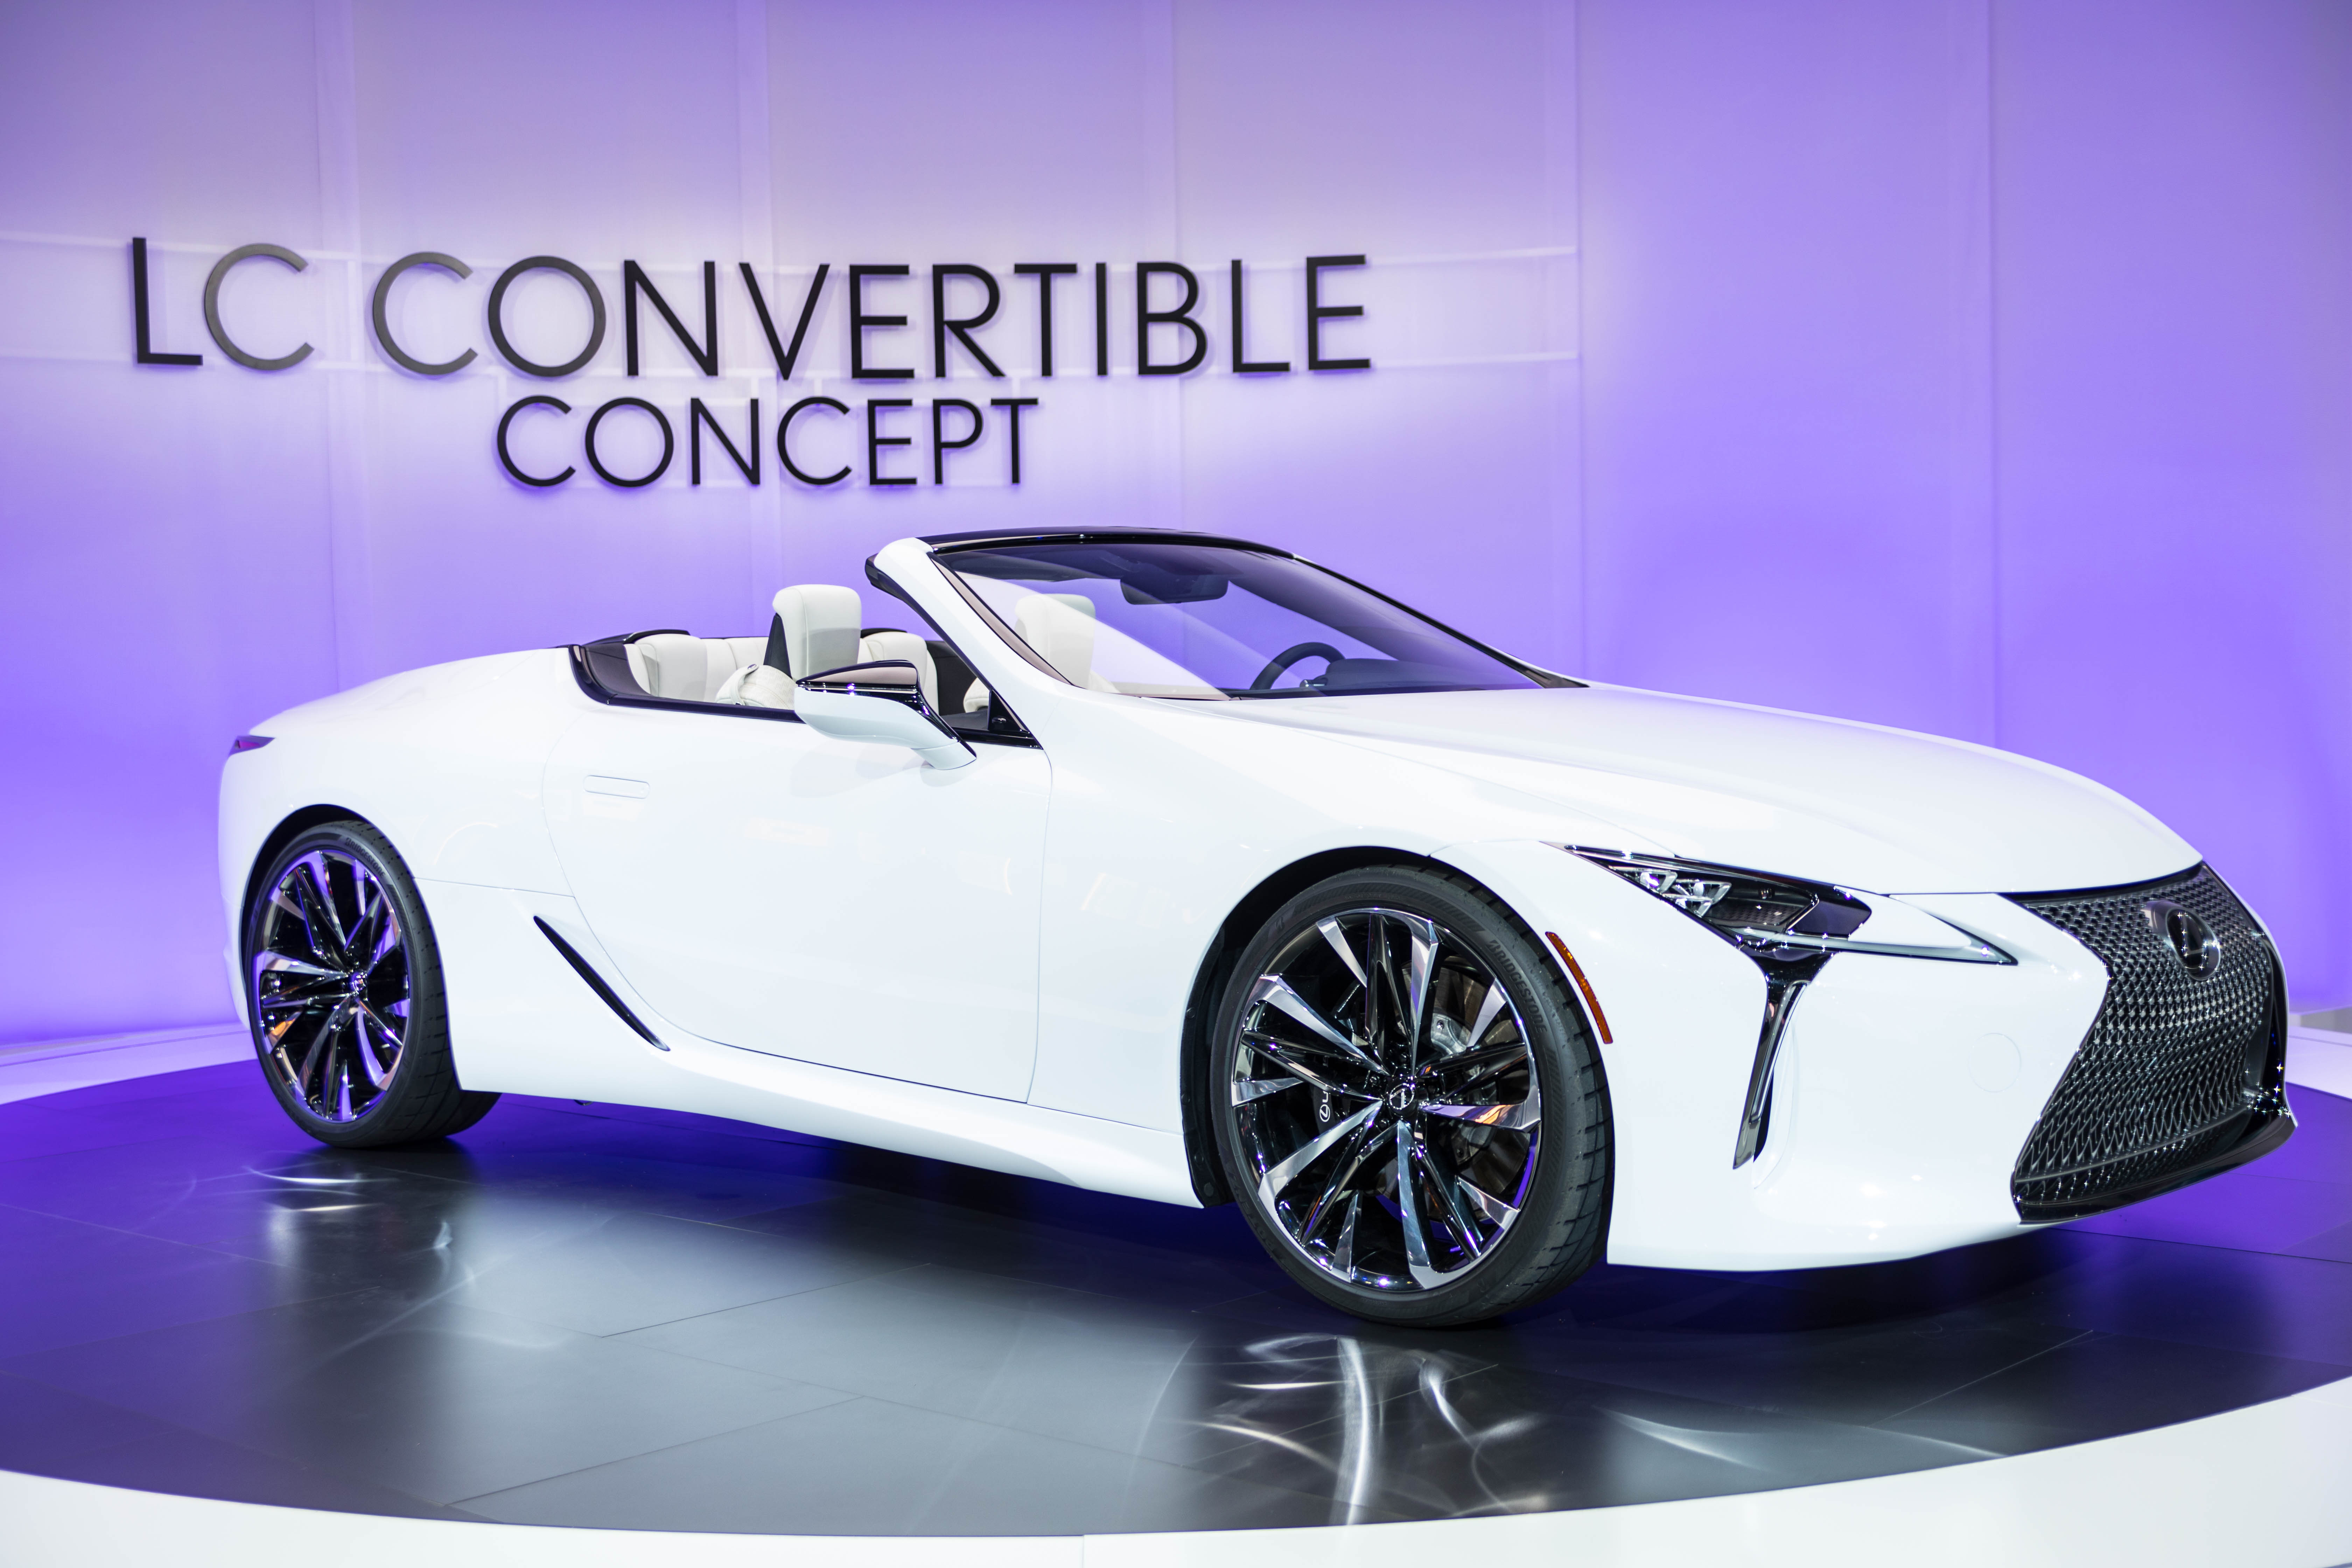 Lexus LC Convertible Luxury Car at Detroit's North American International Auto Show Press Preview Day NAIAS 2019 by Annie Fairfax